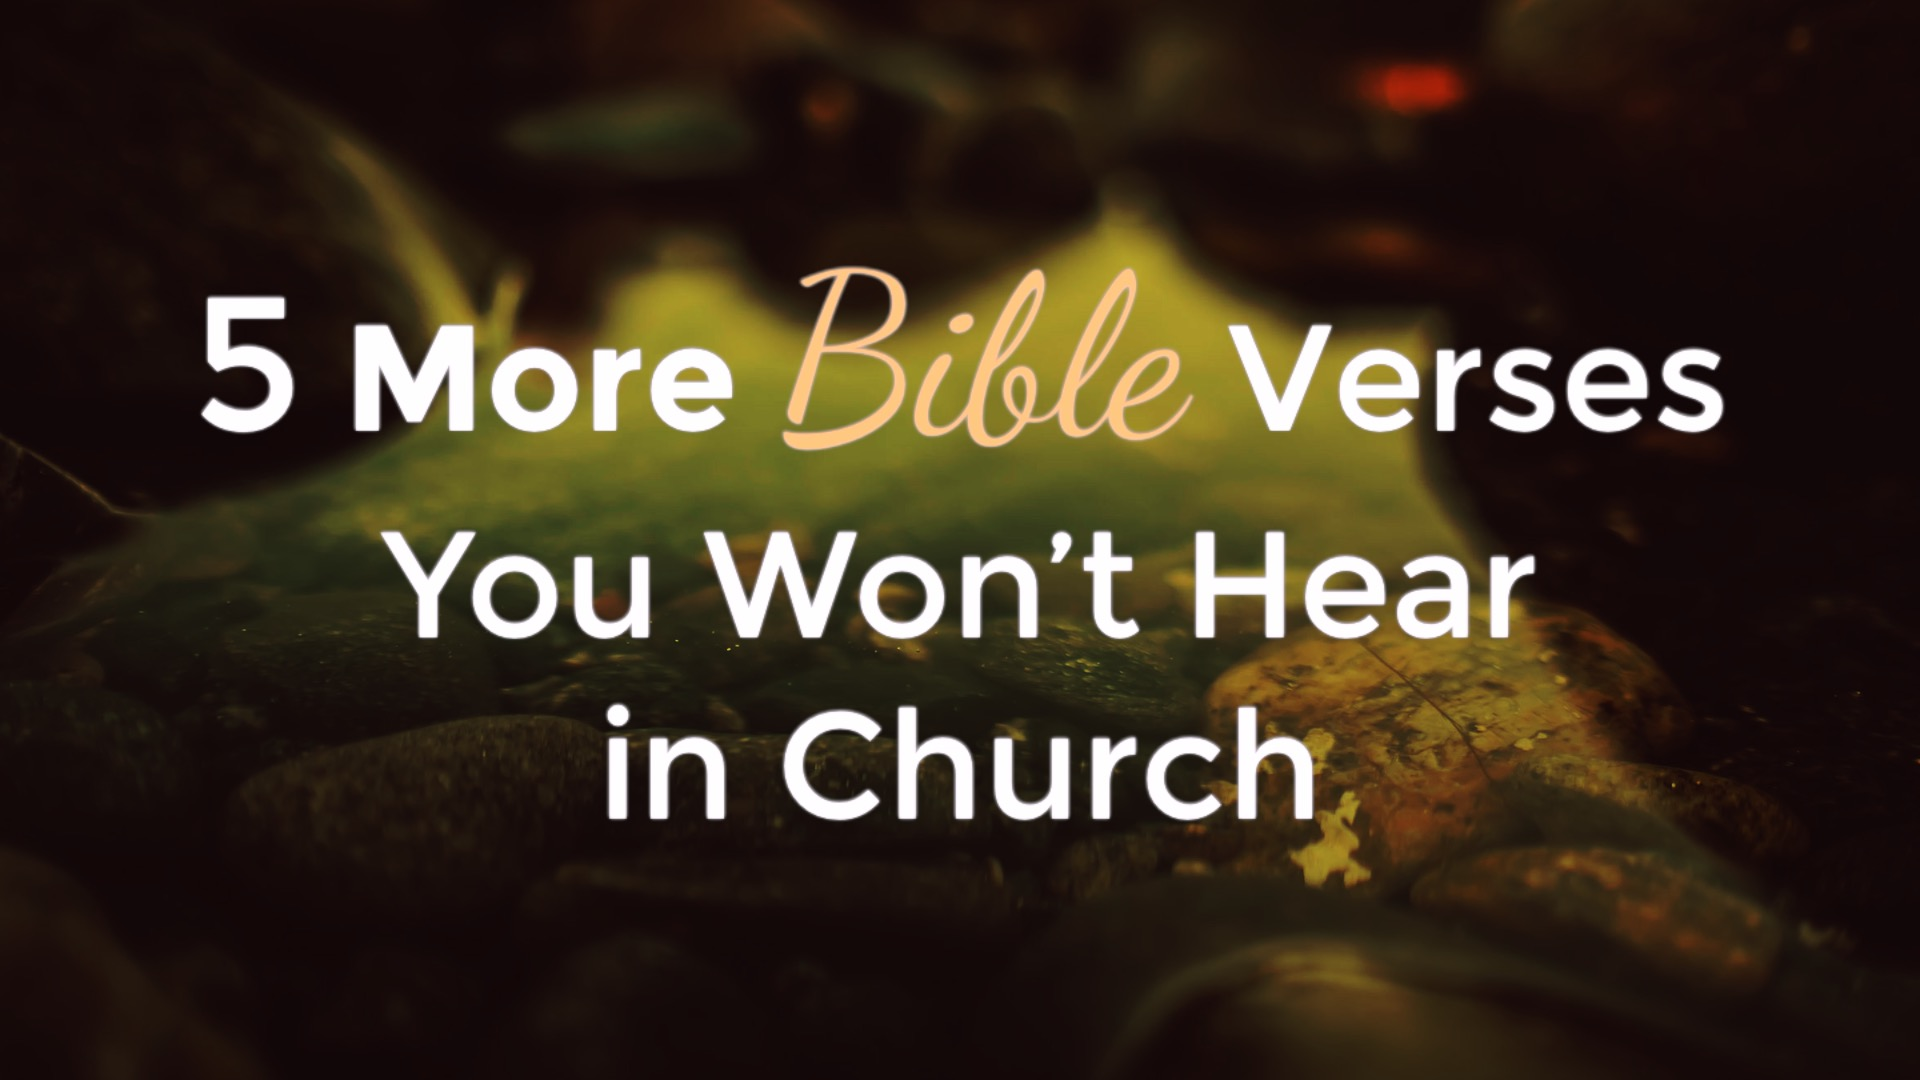 5 More Bible Verses You Won't Hear in Church